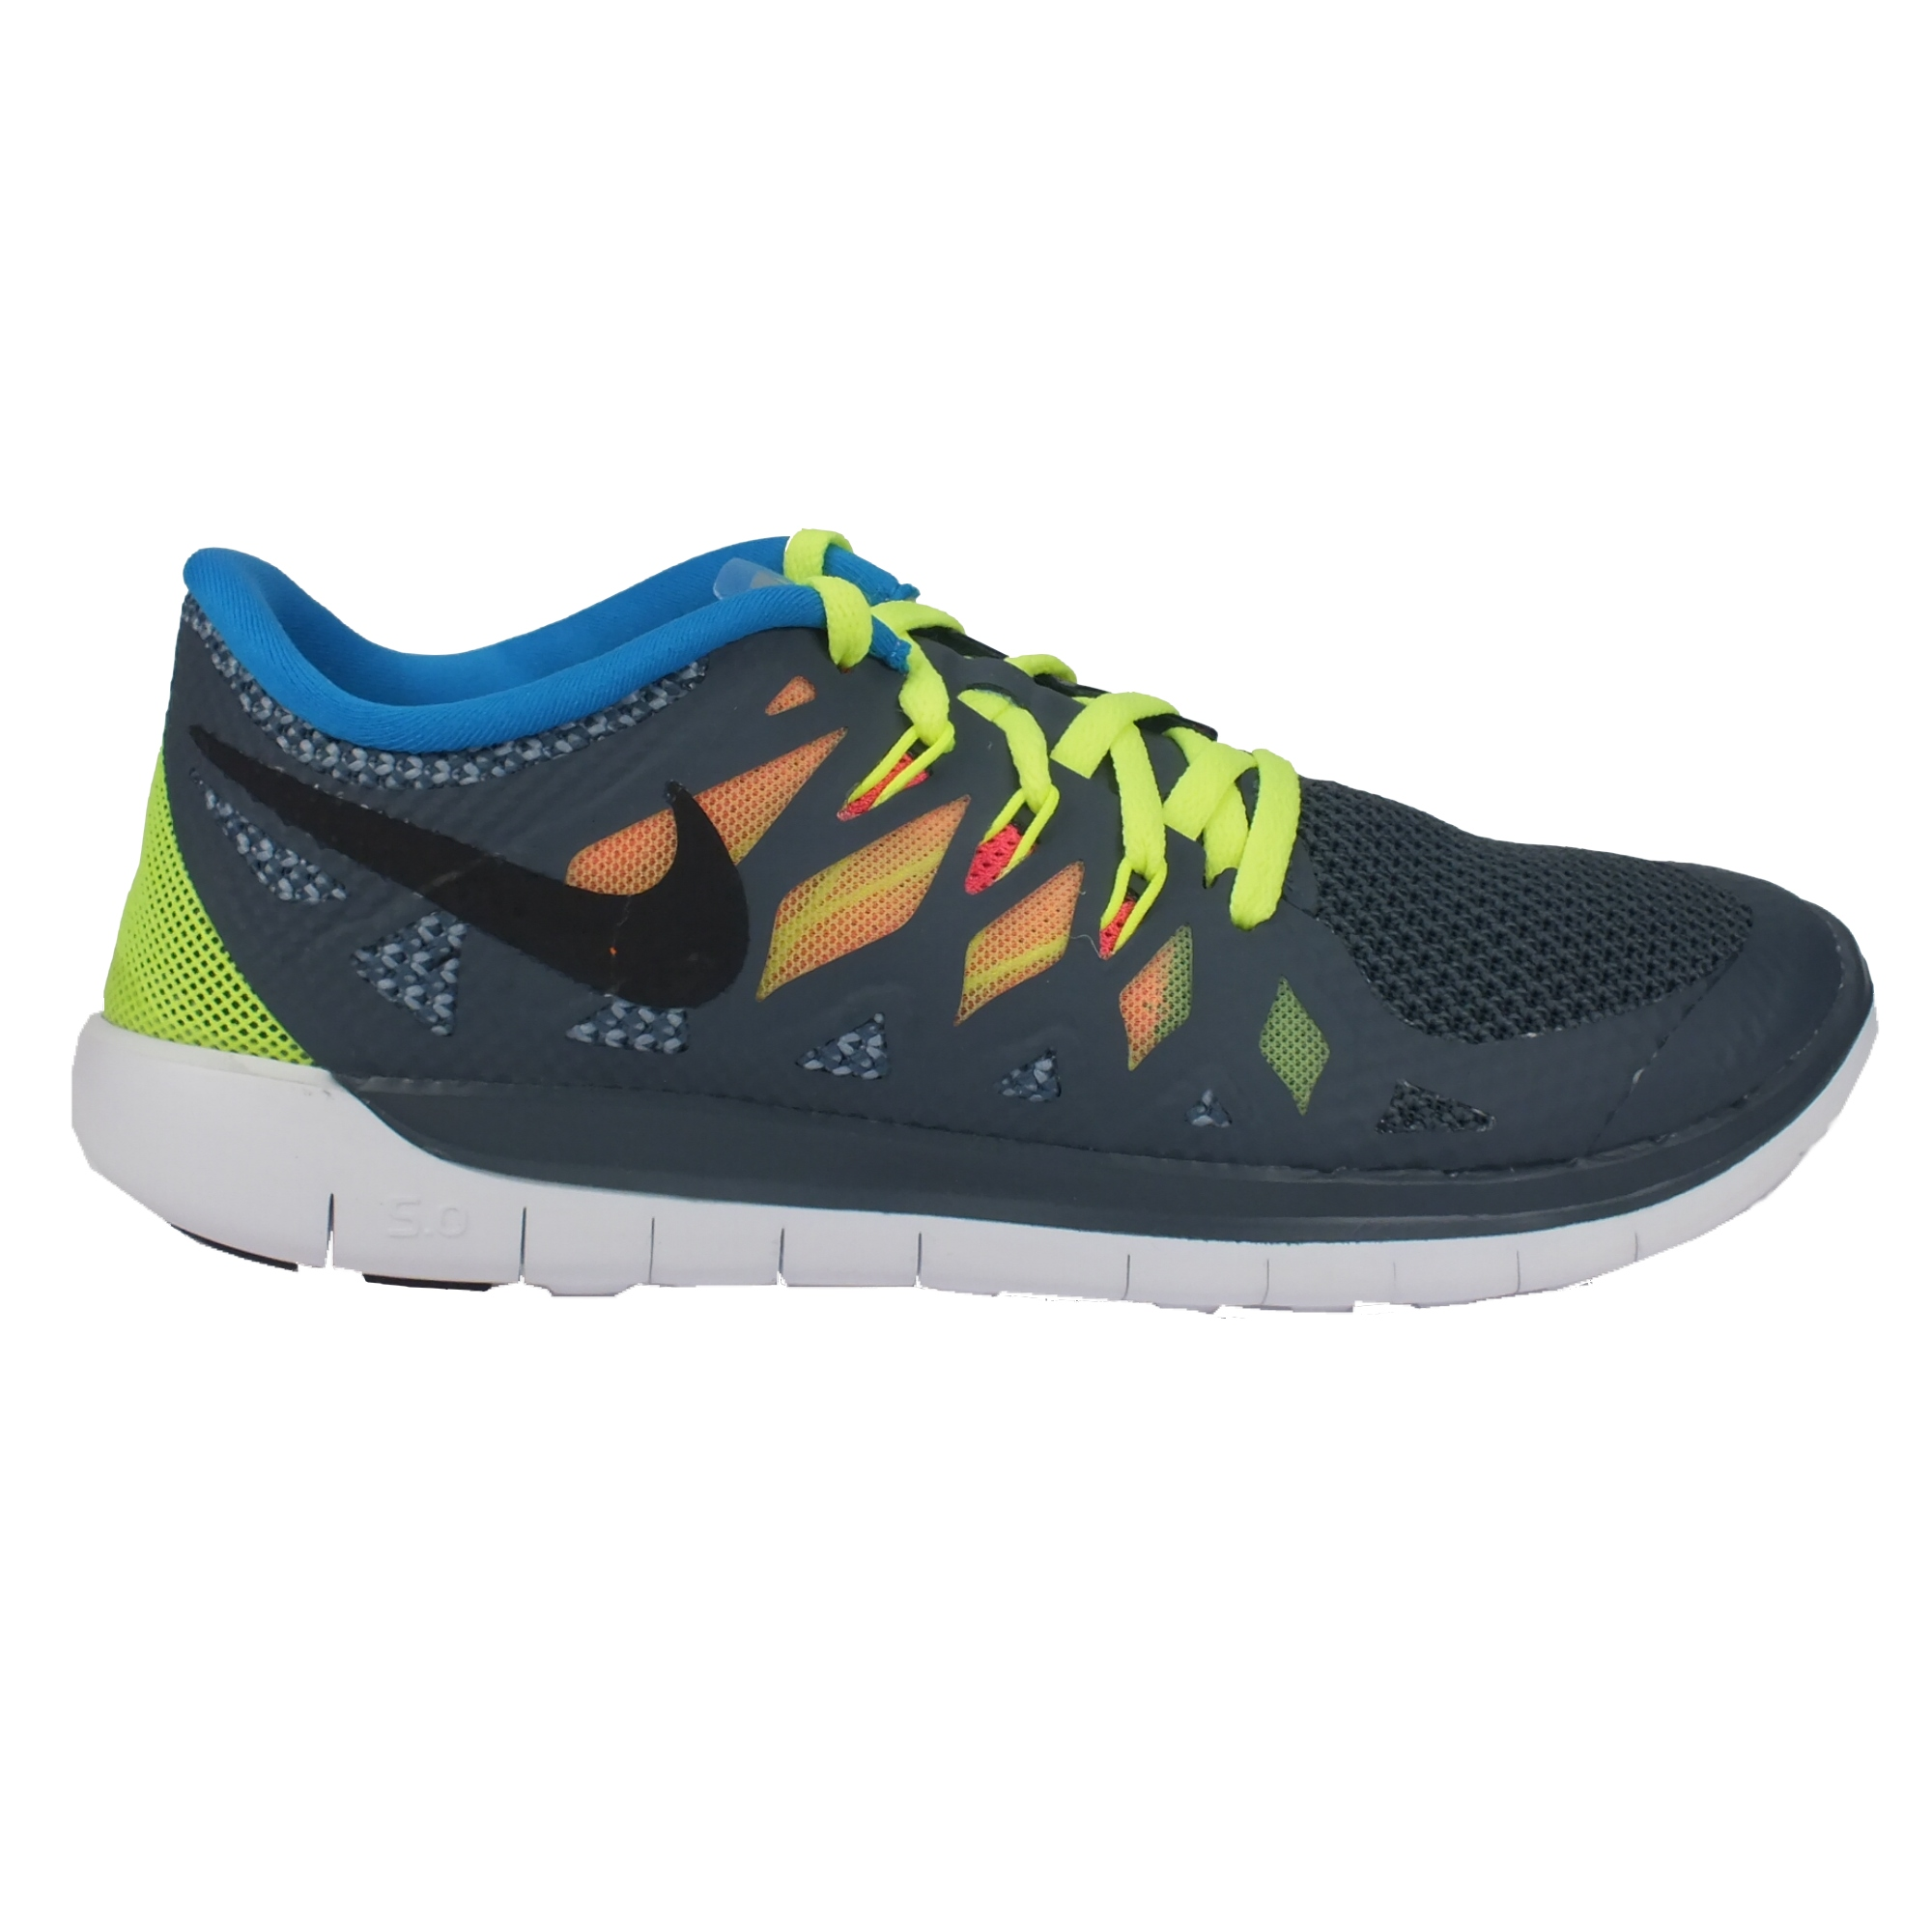 nike free 5 0 gs run schuhe laufschuhe sportschuhe jogging. Black Bedroom Furniture Sets. Home Design Ideas